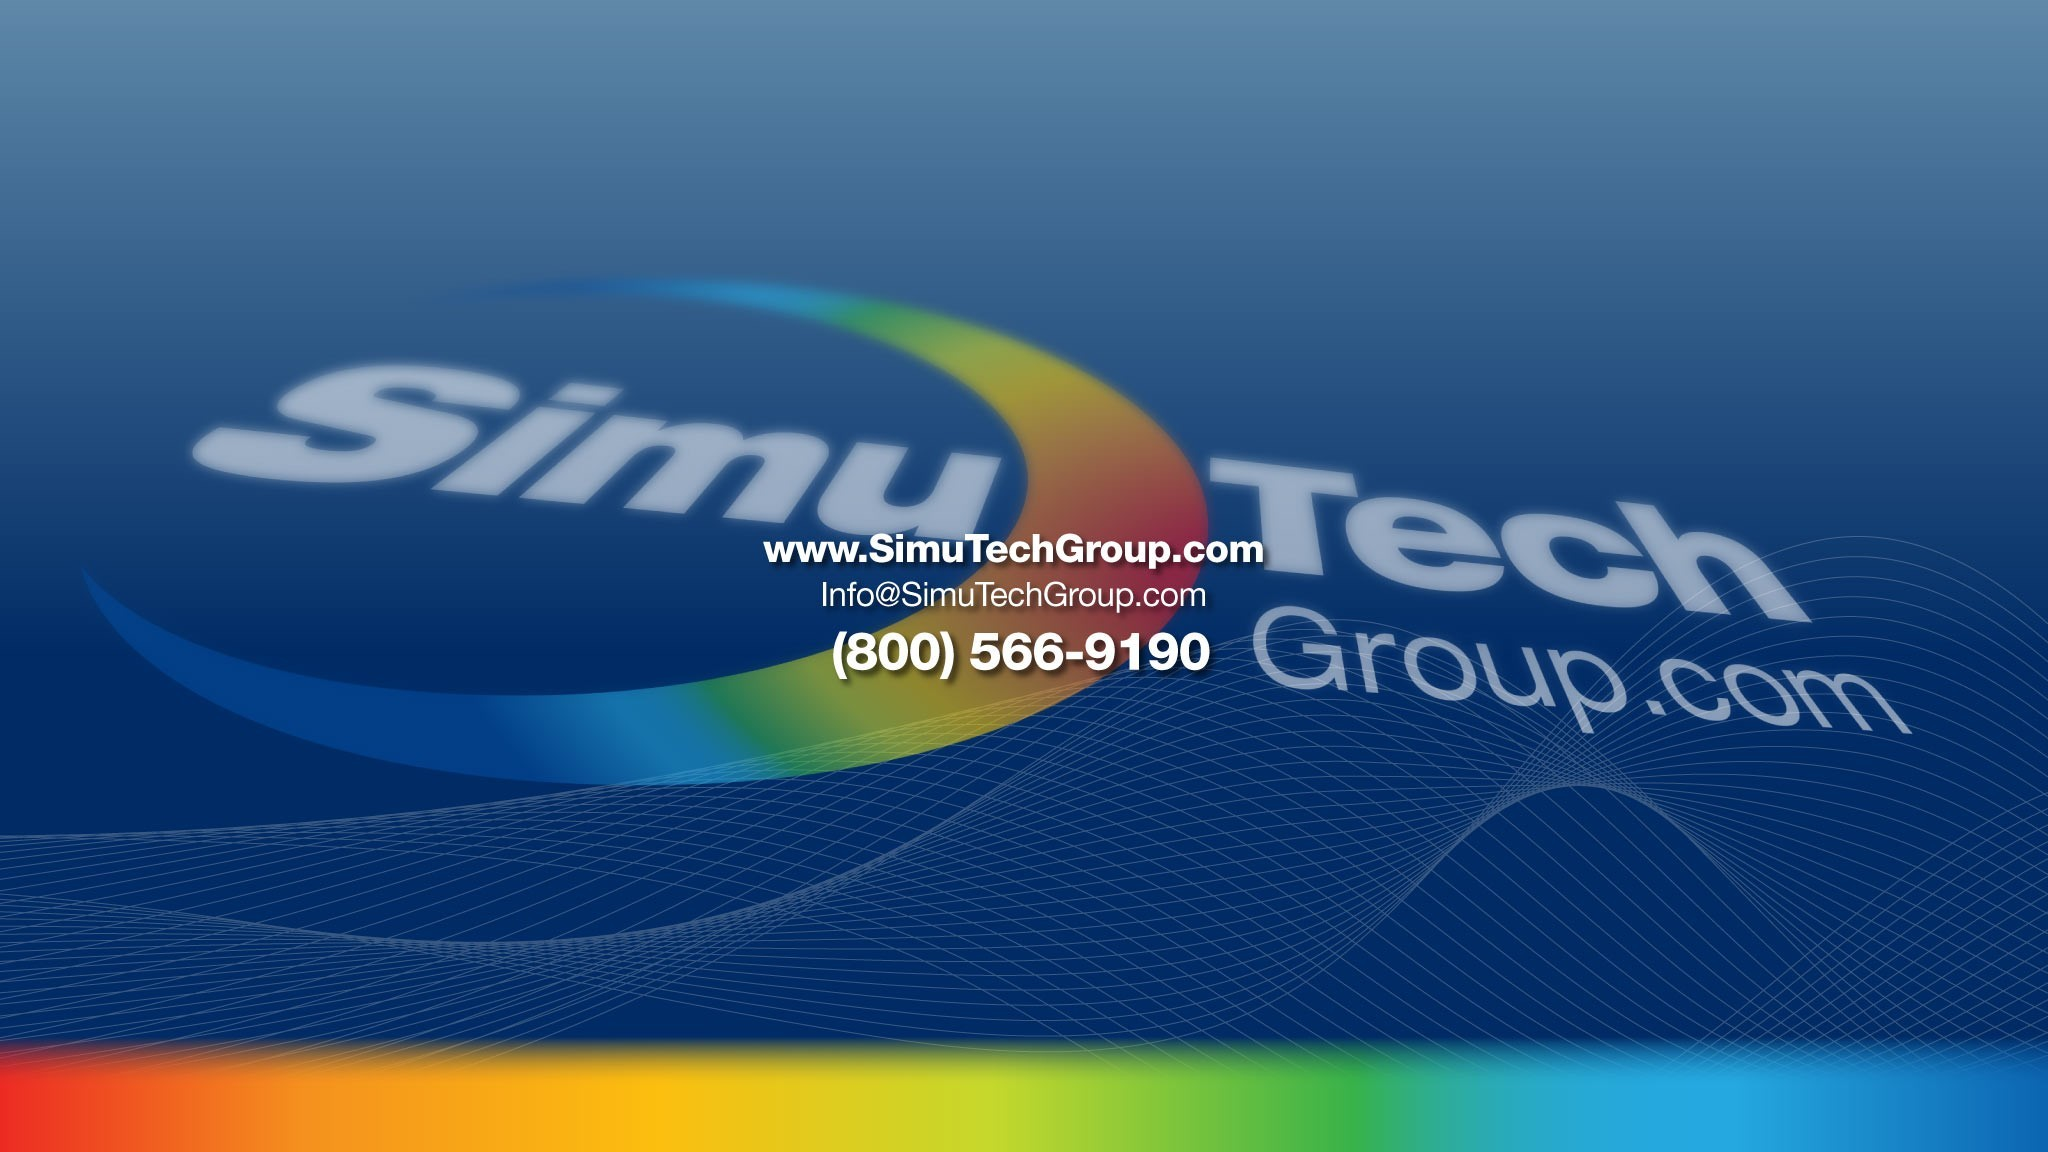 SimuTech Group - ANSYS Certified Elite Channel Partner